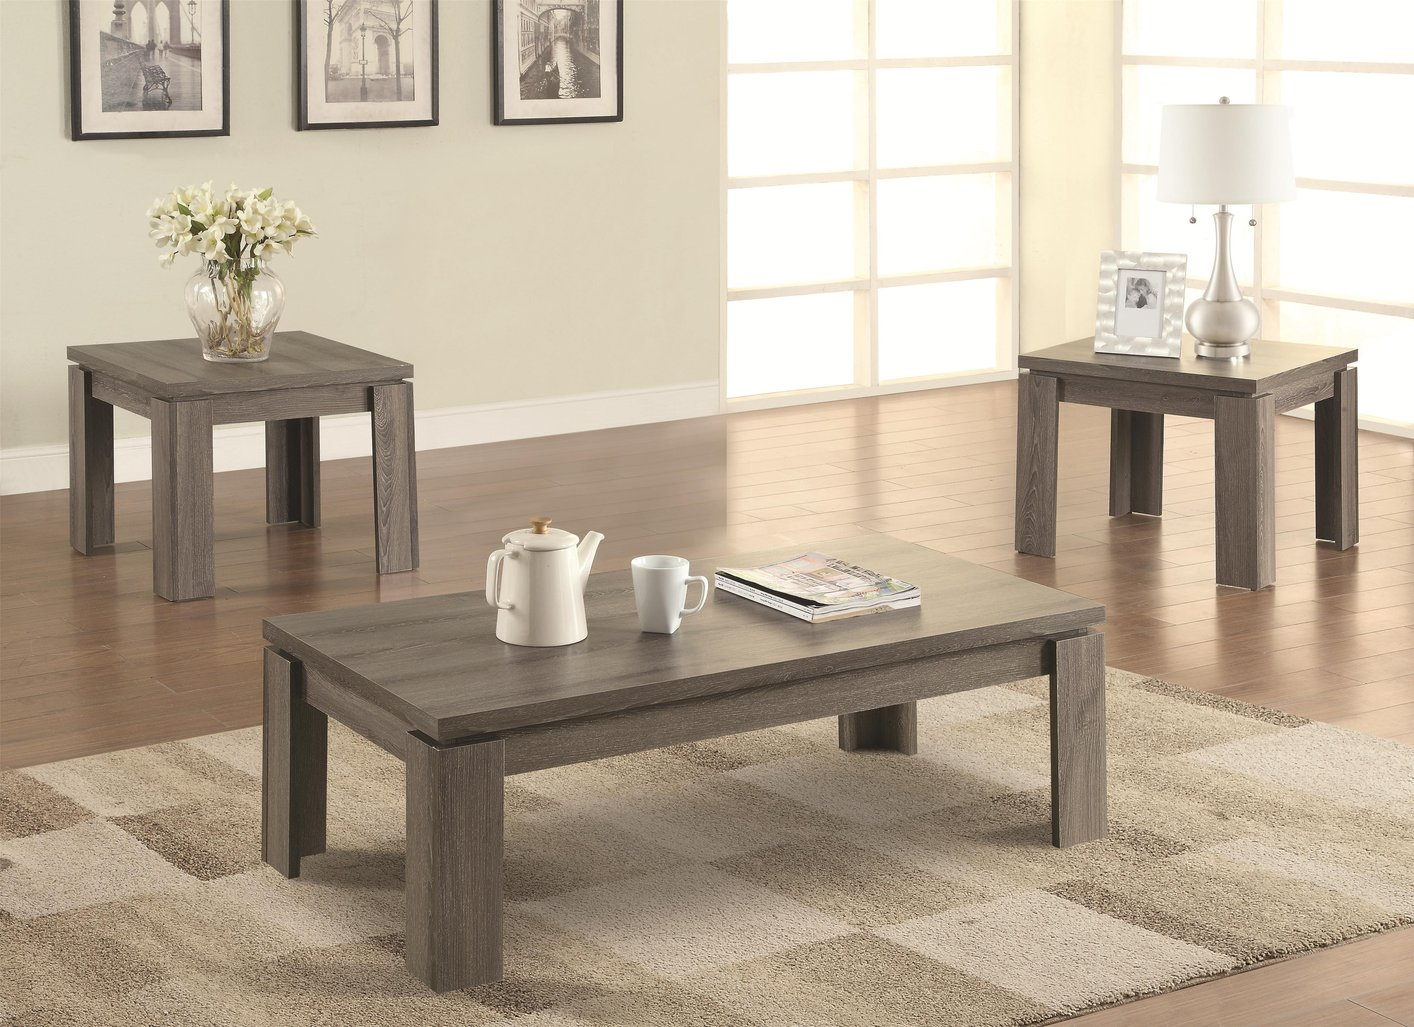 Coaster 701686 Grey Wood Coffee Table Set Steal A Sofa